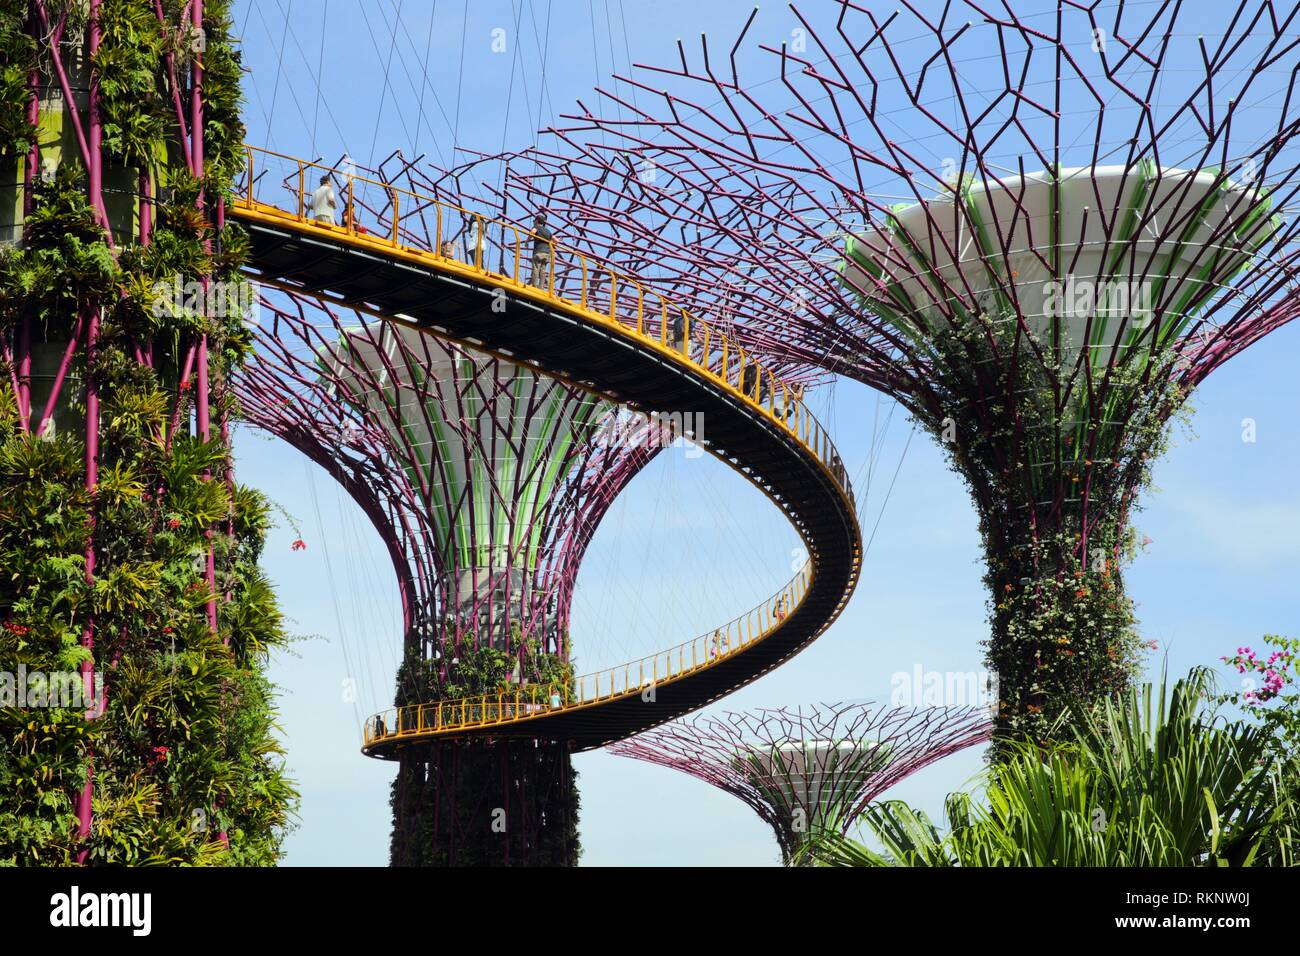 People walking along the skywalk that connects the iconic tree-like vertical gardens with large canopies, Supertree Grove, Botanic Garden, Garden by - Stock Image